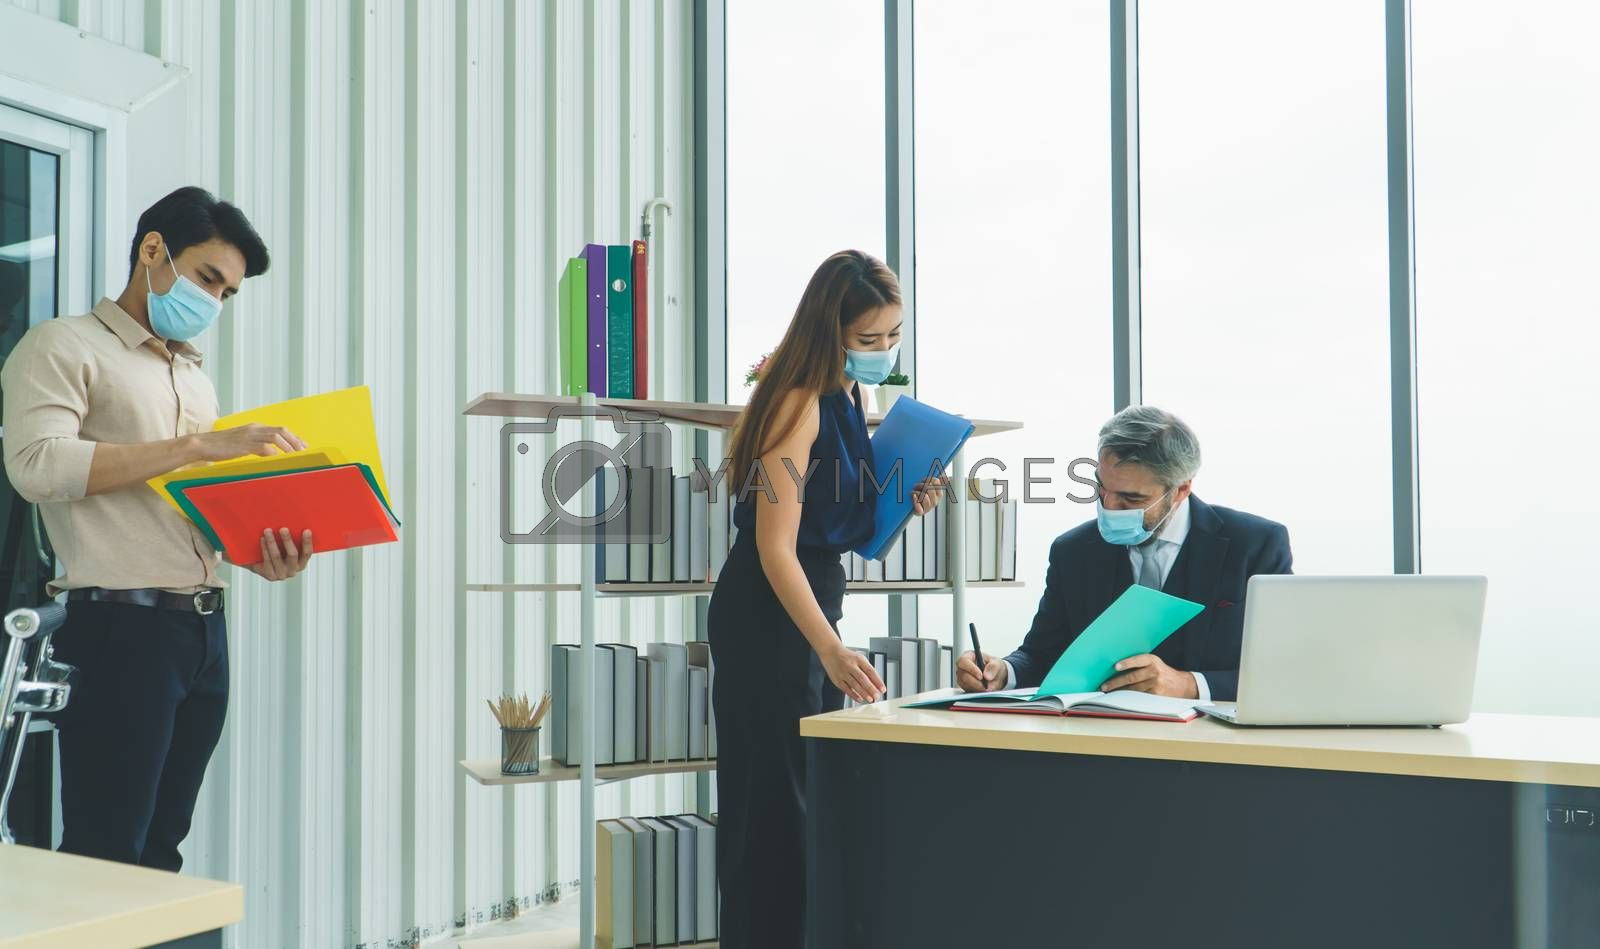 Business people wear a protective mask to work together in the company office. social distancing is the new normal. The concept of preventing the spread of coronavirus or COVID-19